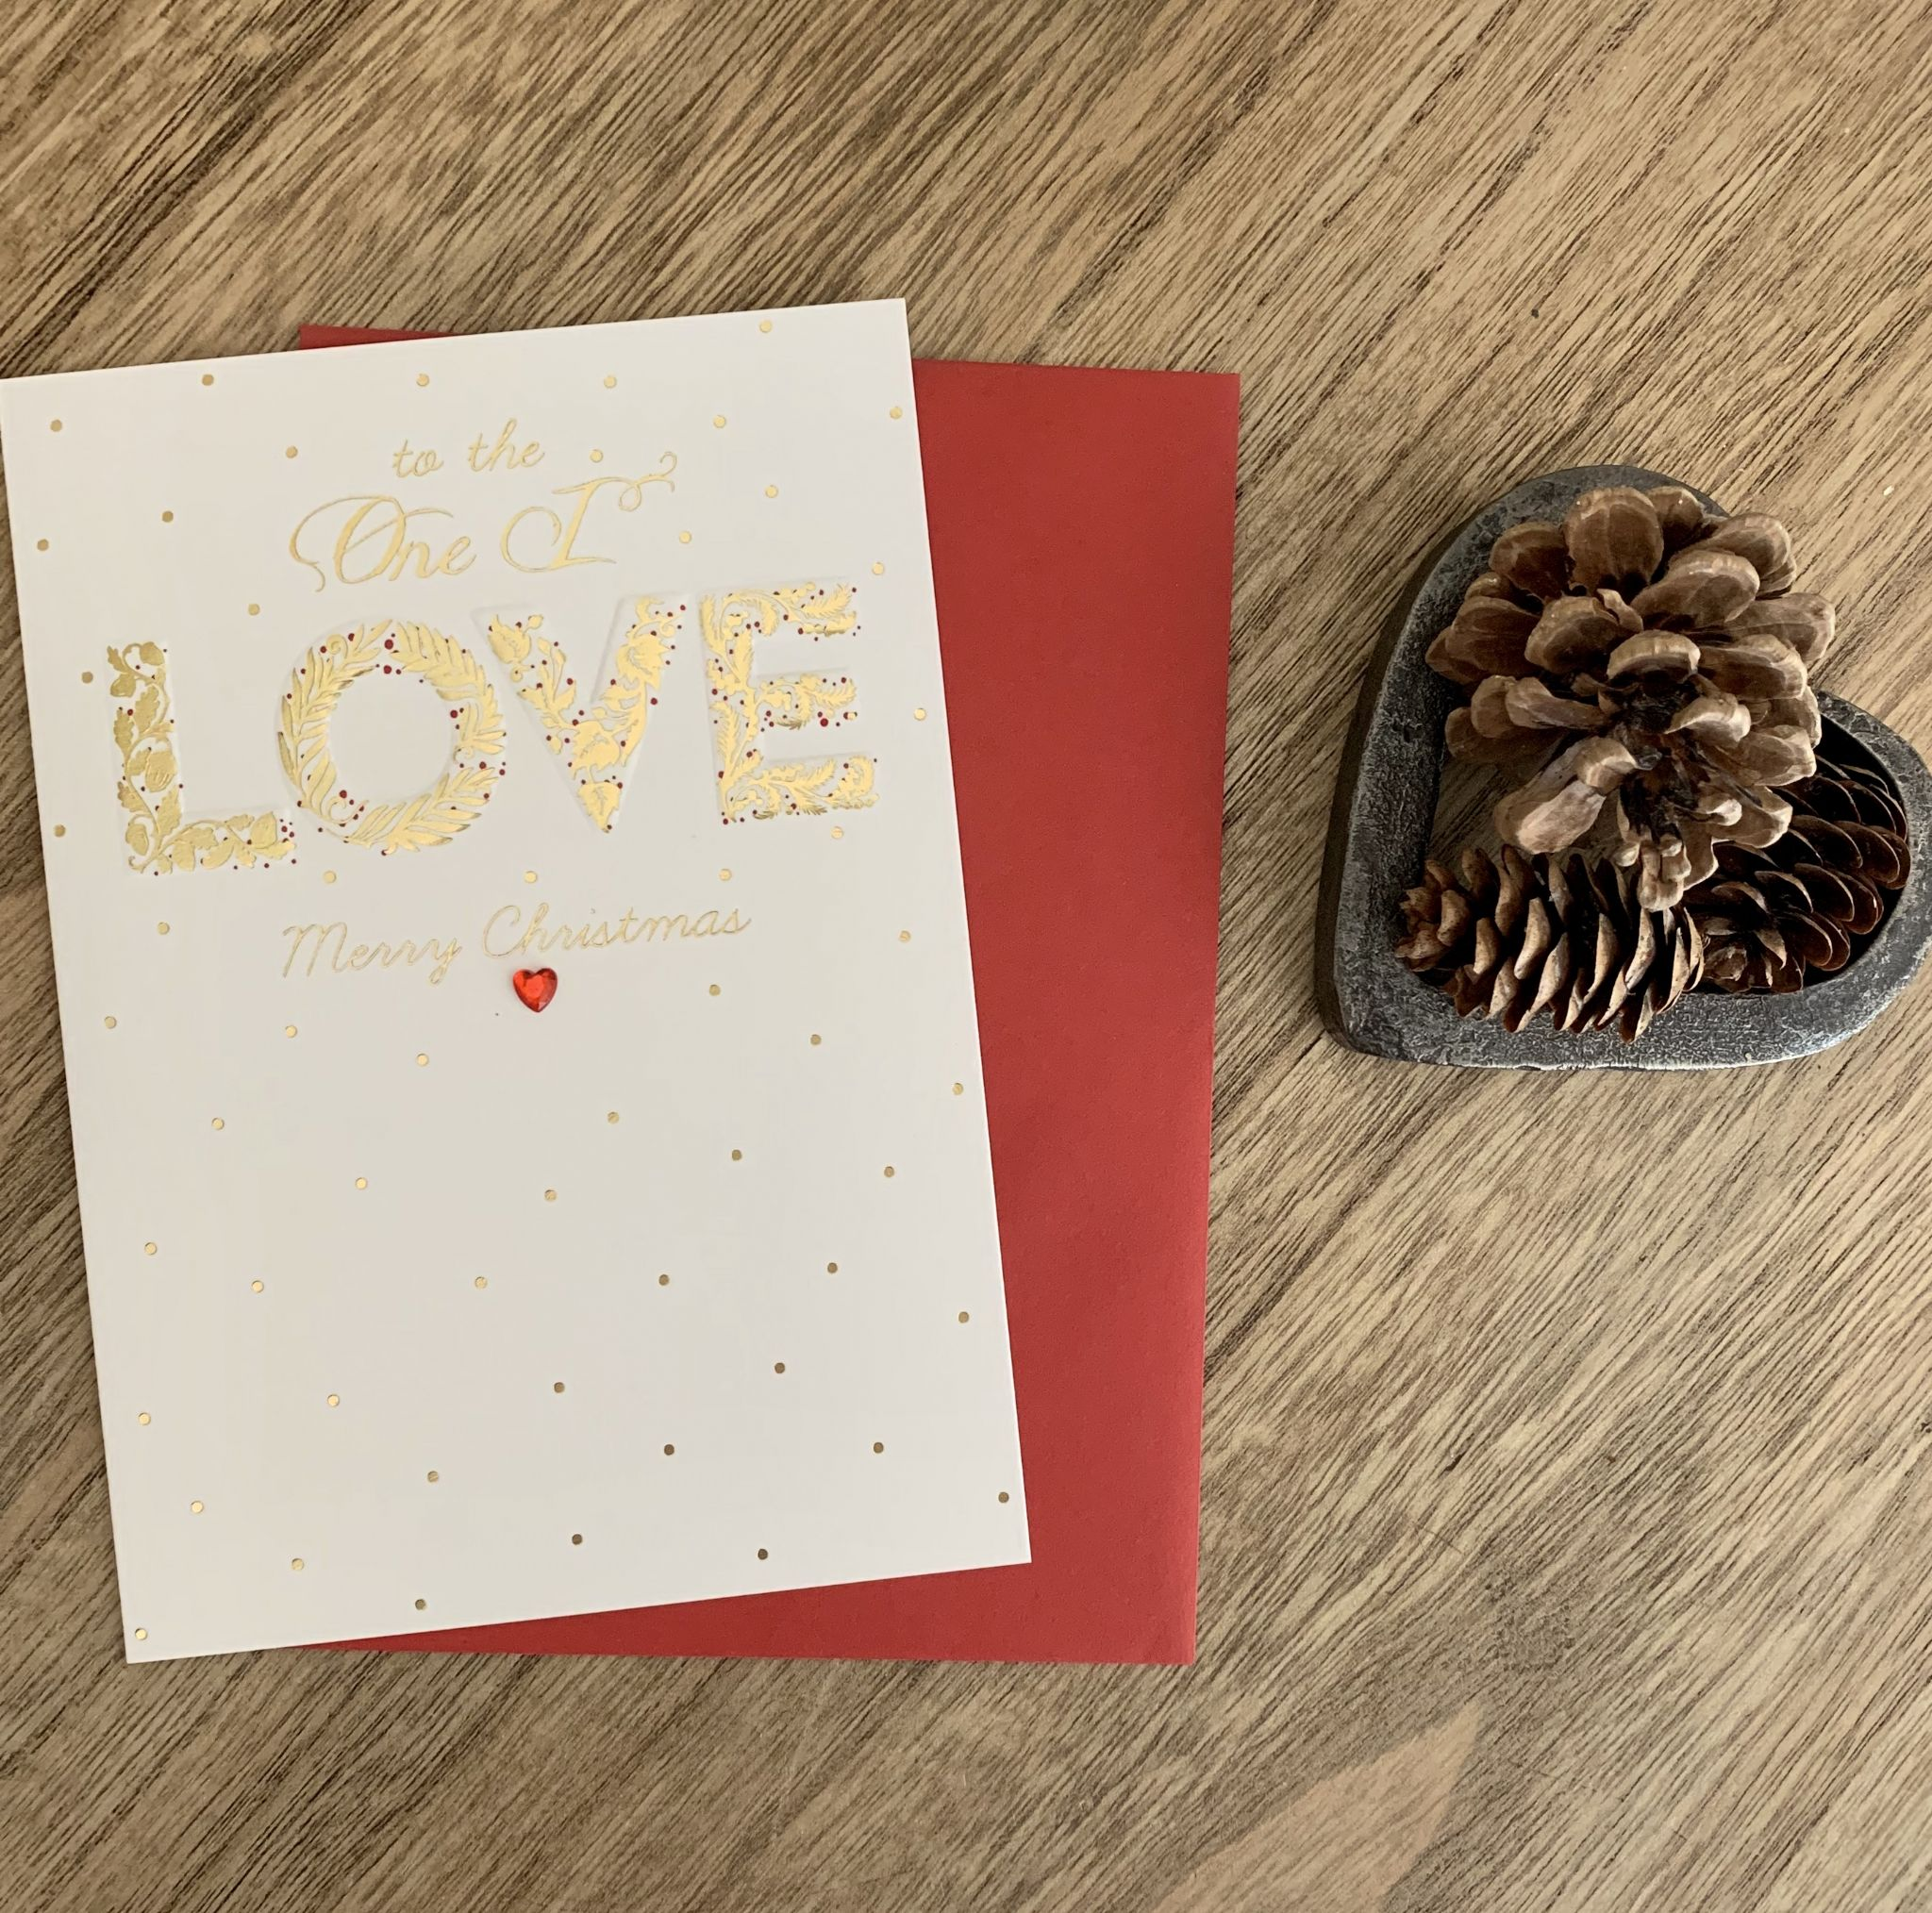 Gorgeous To The One I Love Merry Christmas Christmas Greeting Card